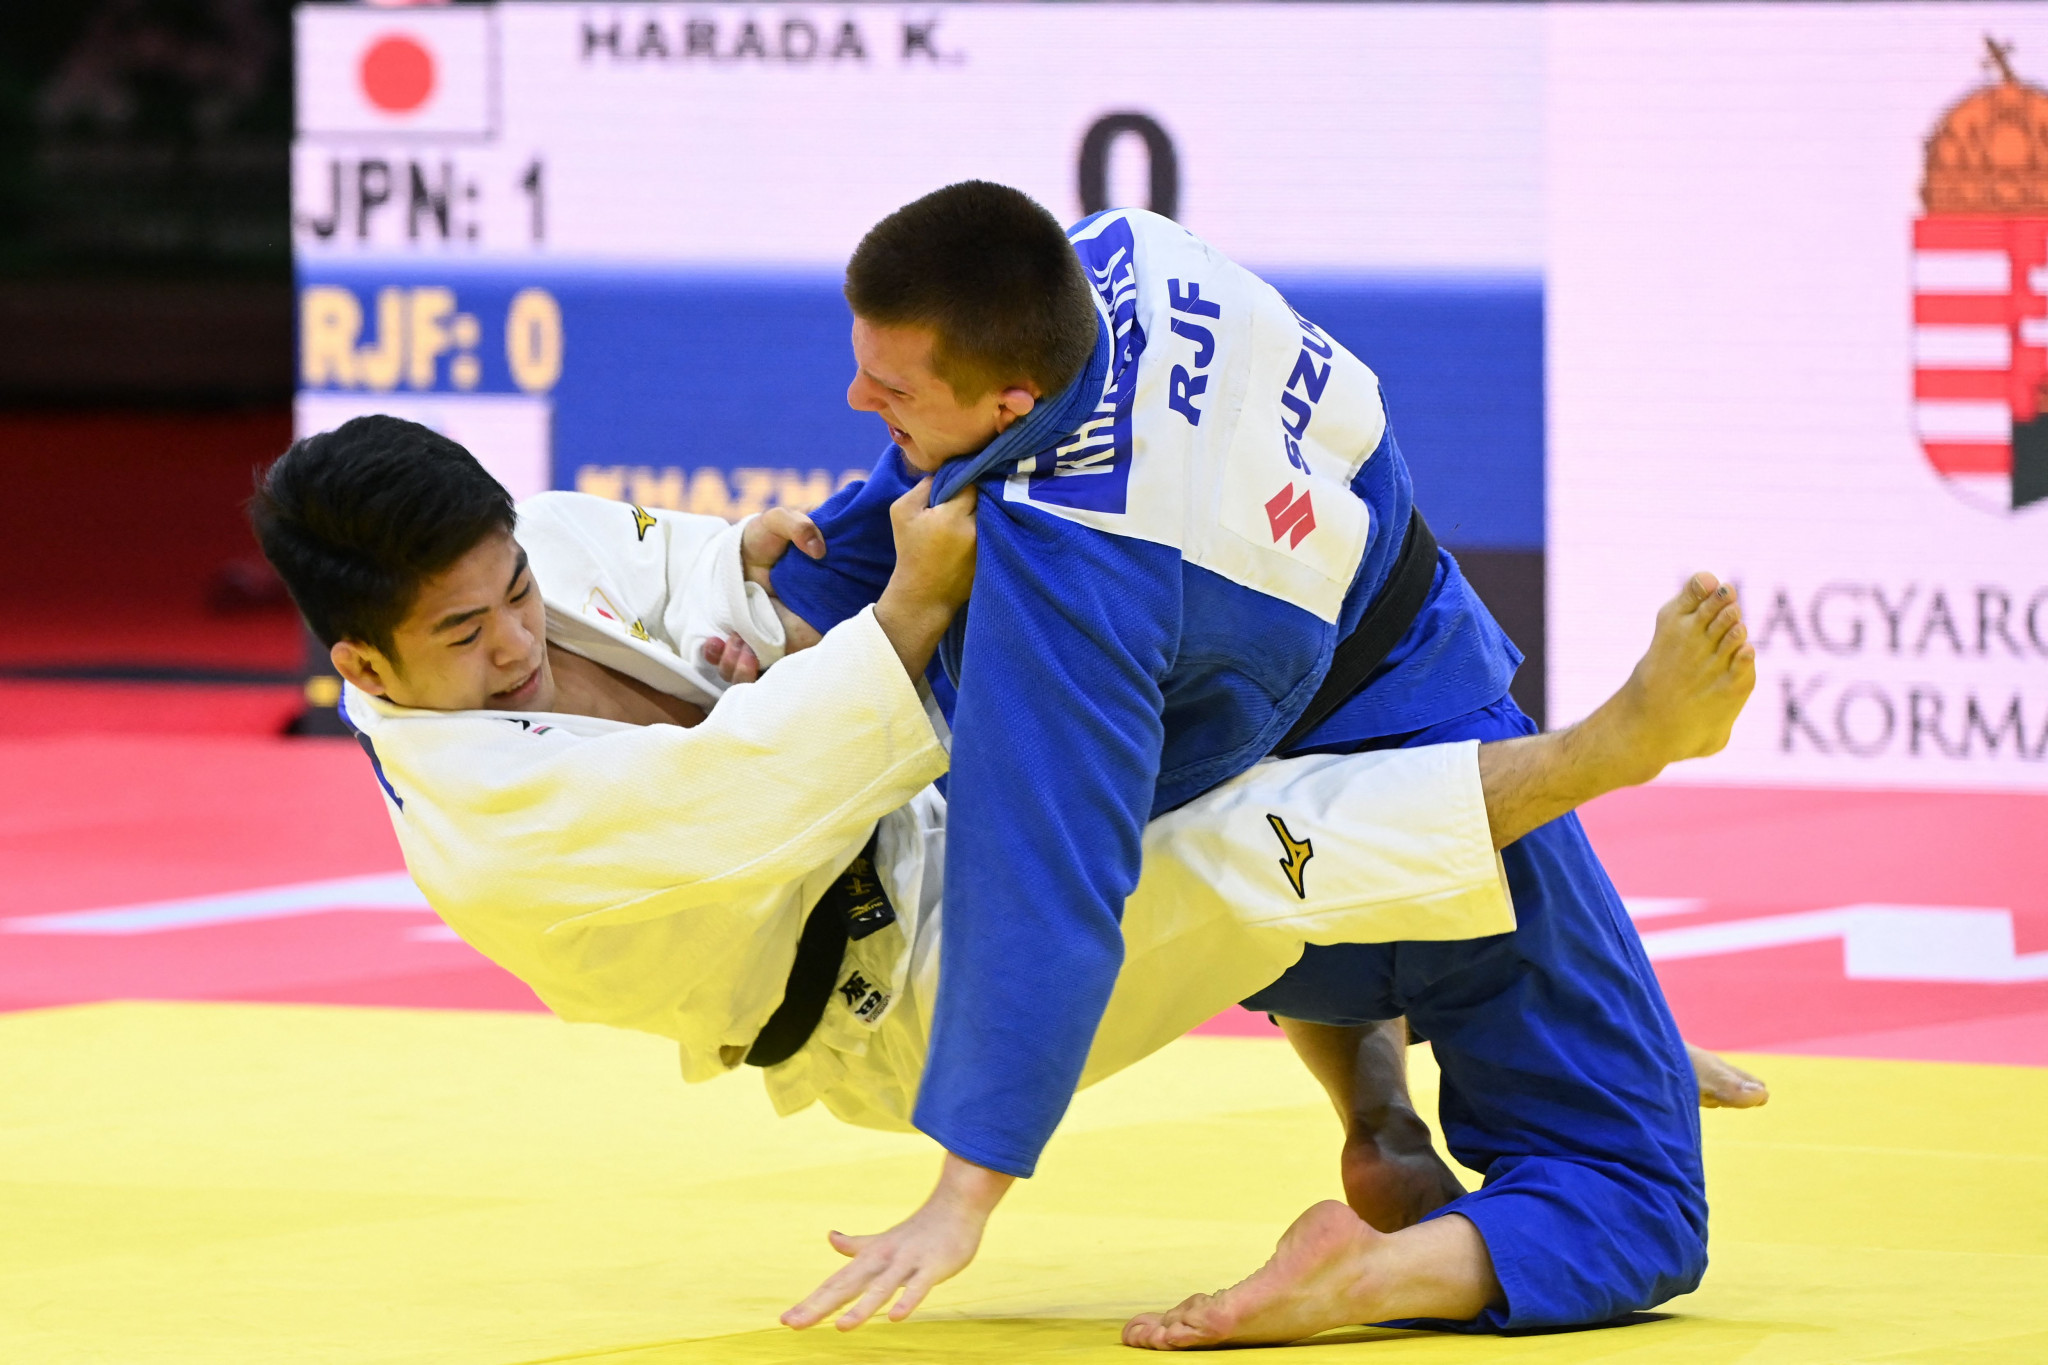 Japan win mixed team gold as World Judo Championships come to a close